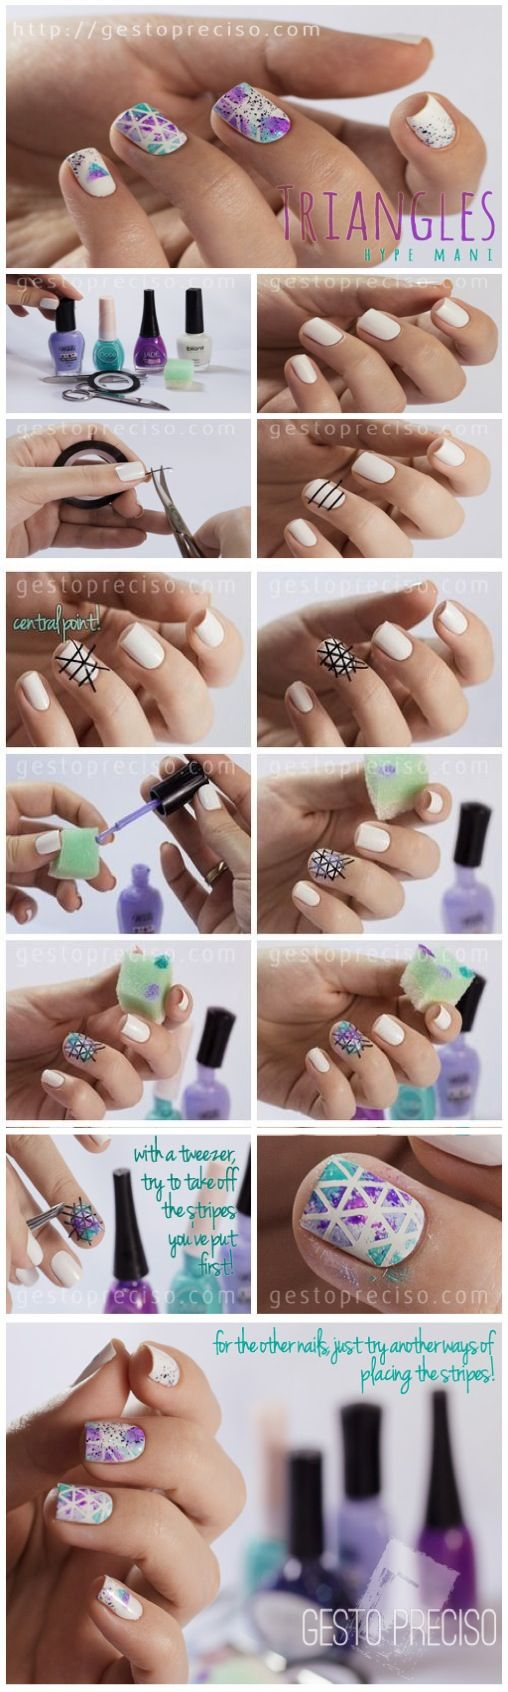 Nail art tutorial #nailart #nail #nails #nailpolish